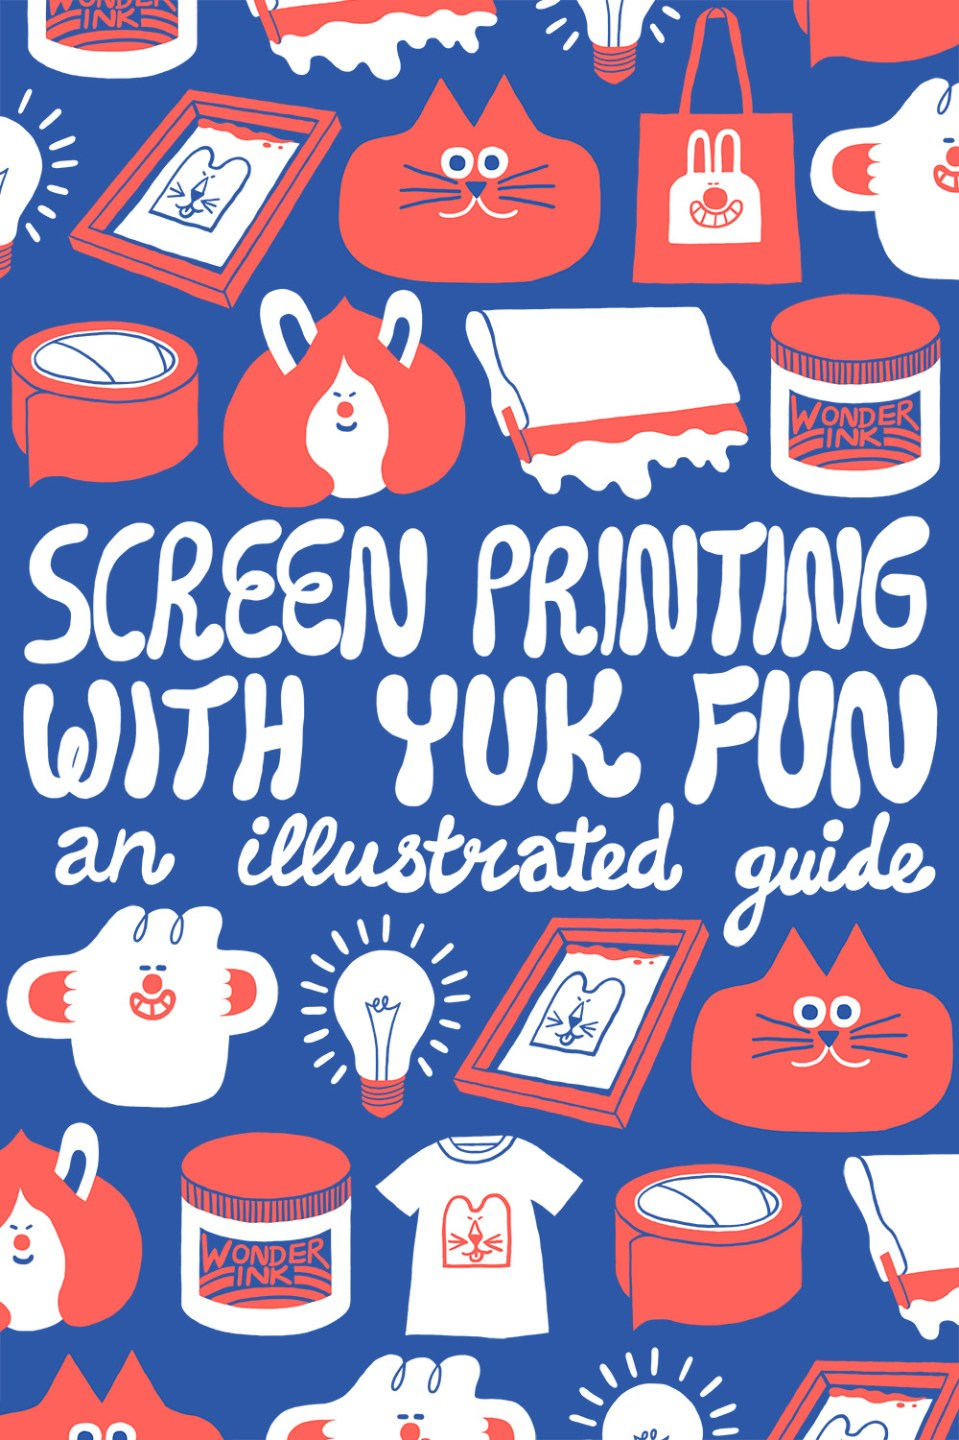 Free guide to learn how to screen print at home with YUK FUN